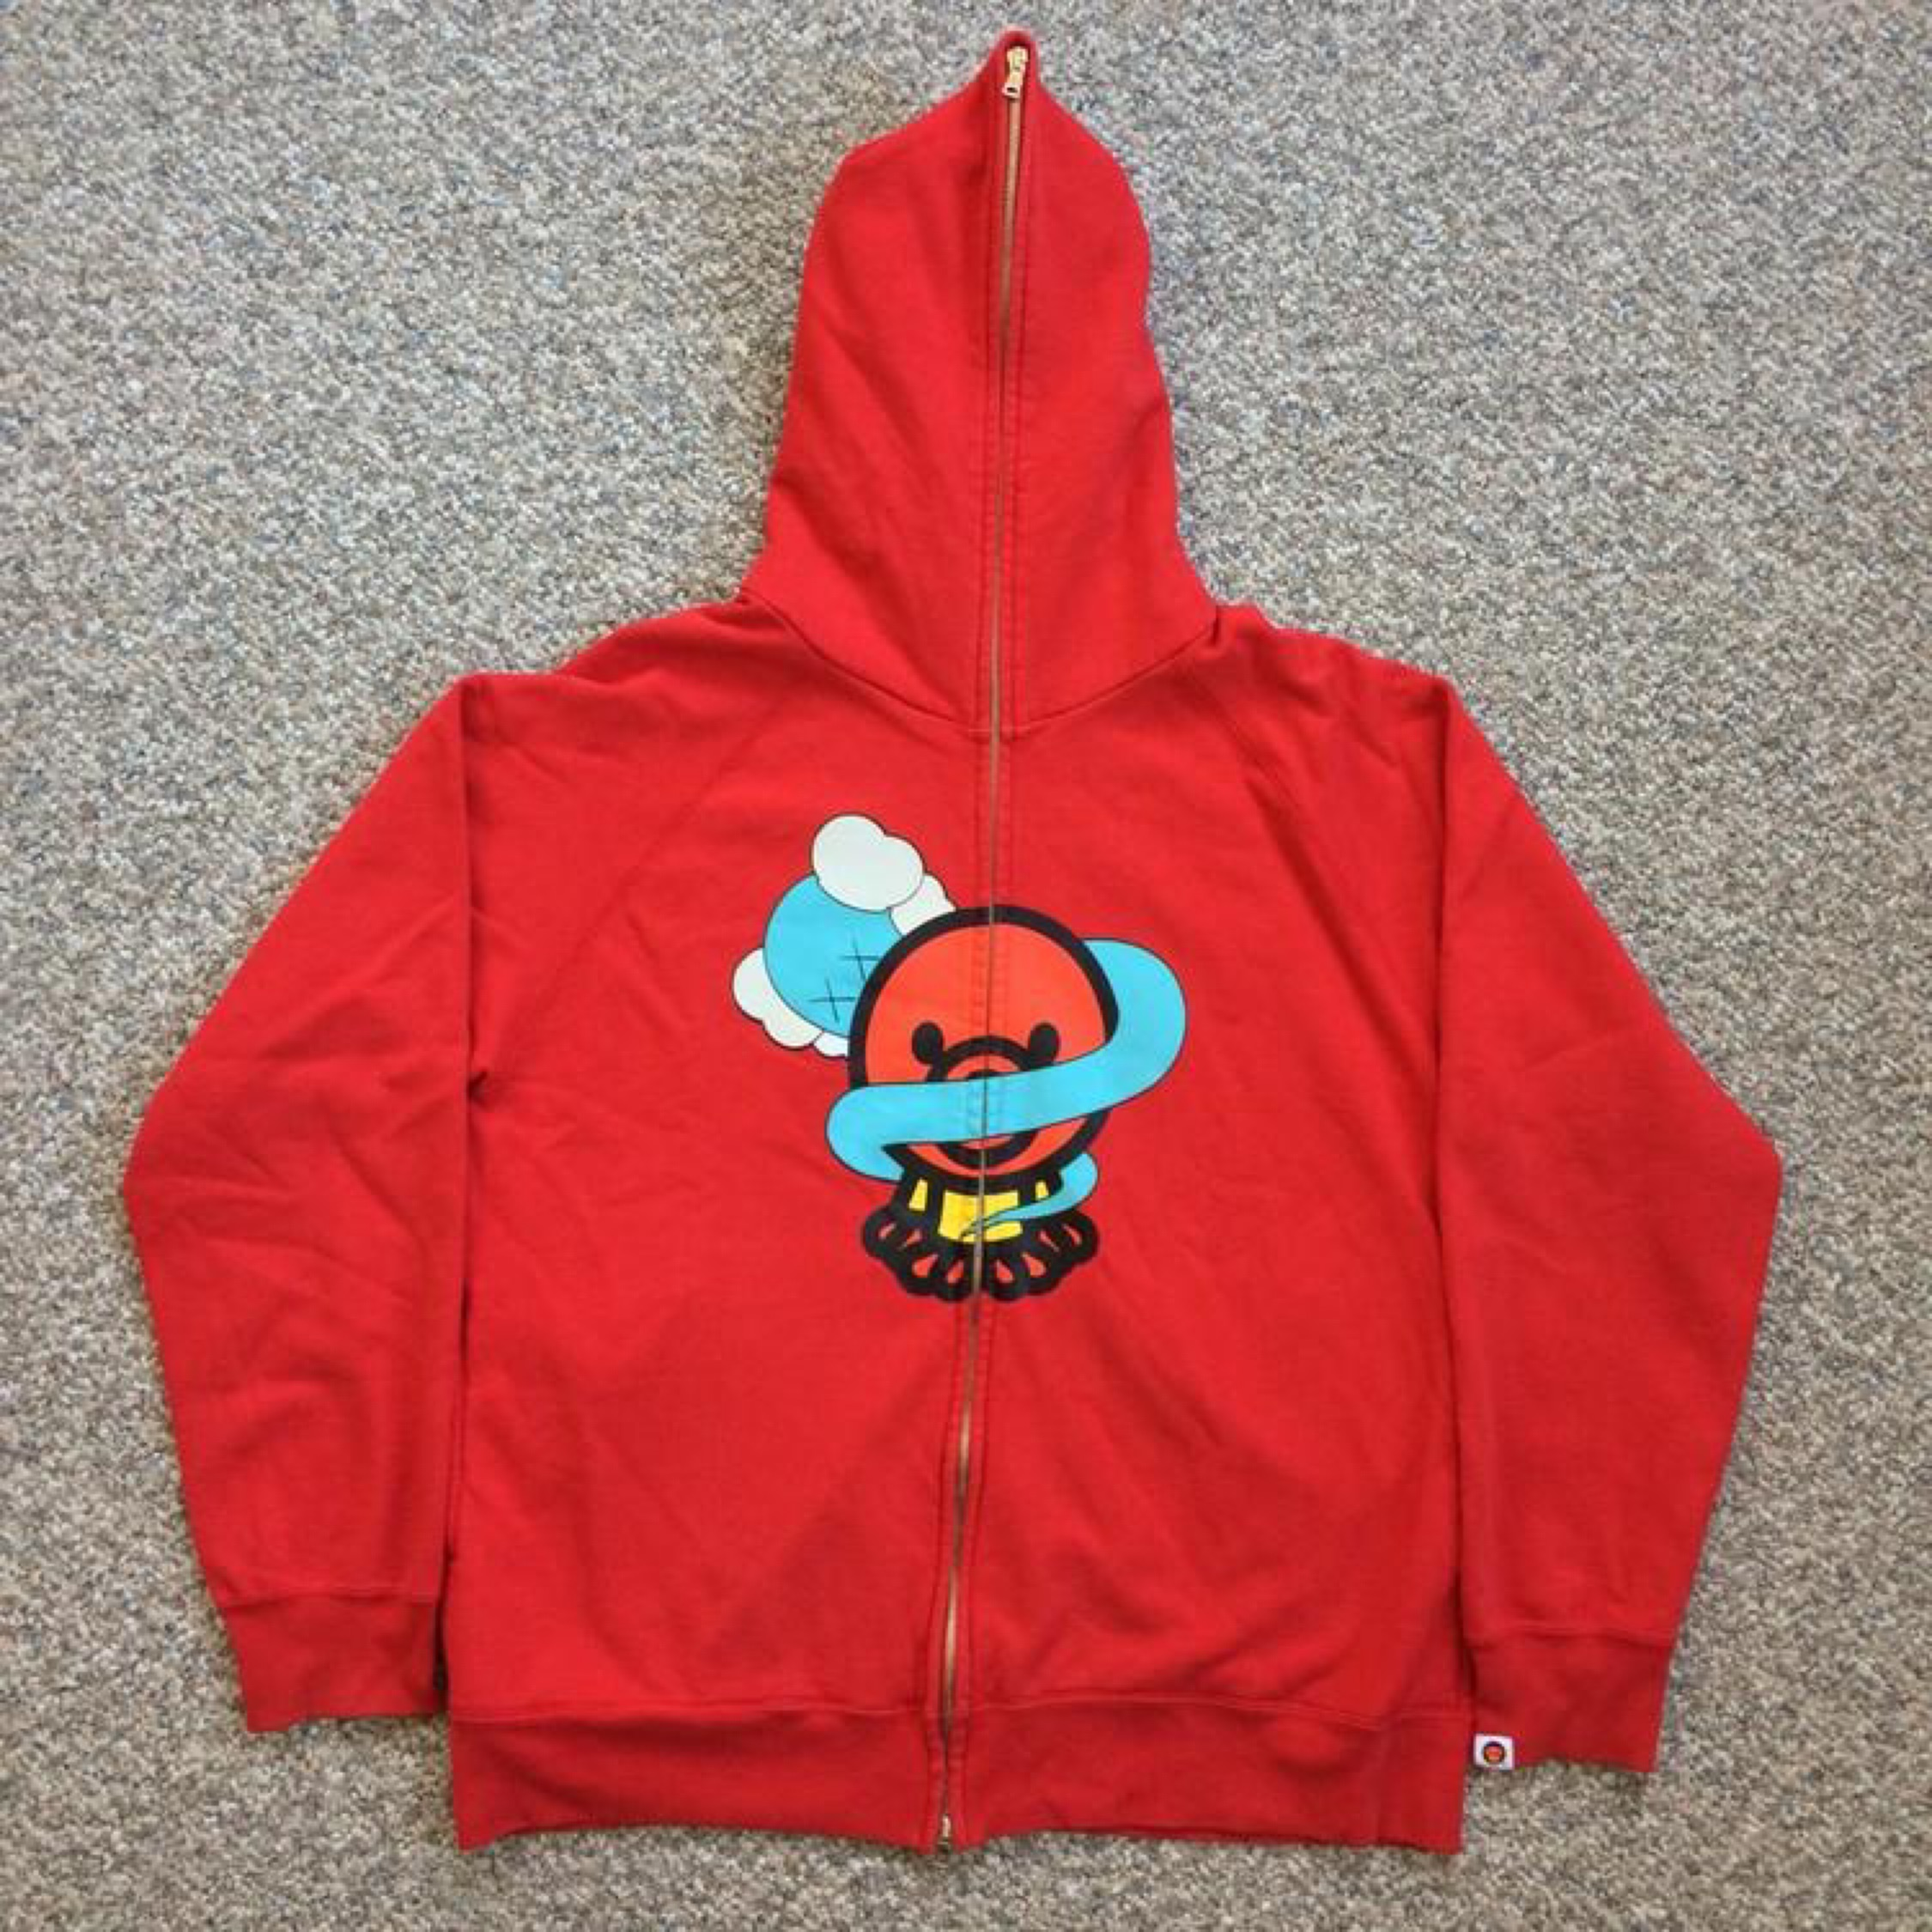 closer at running shoes coupon codes Bathing Ape X Kaws Hoodie In Vibrant Red